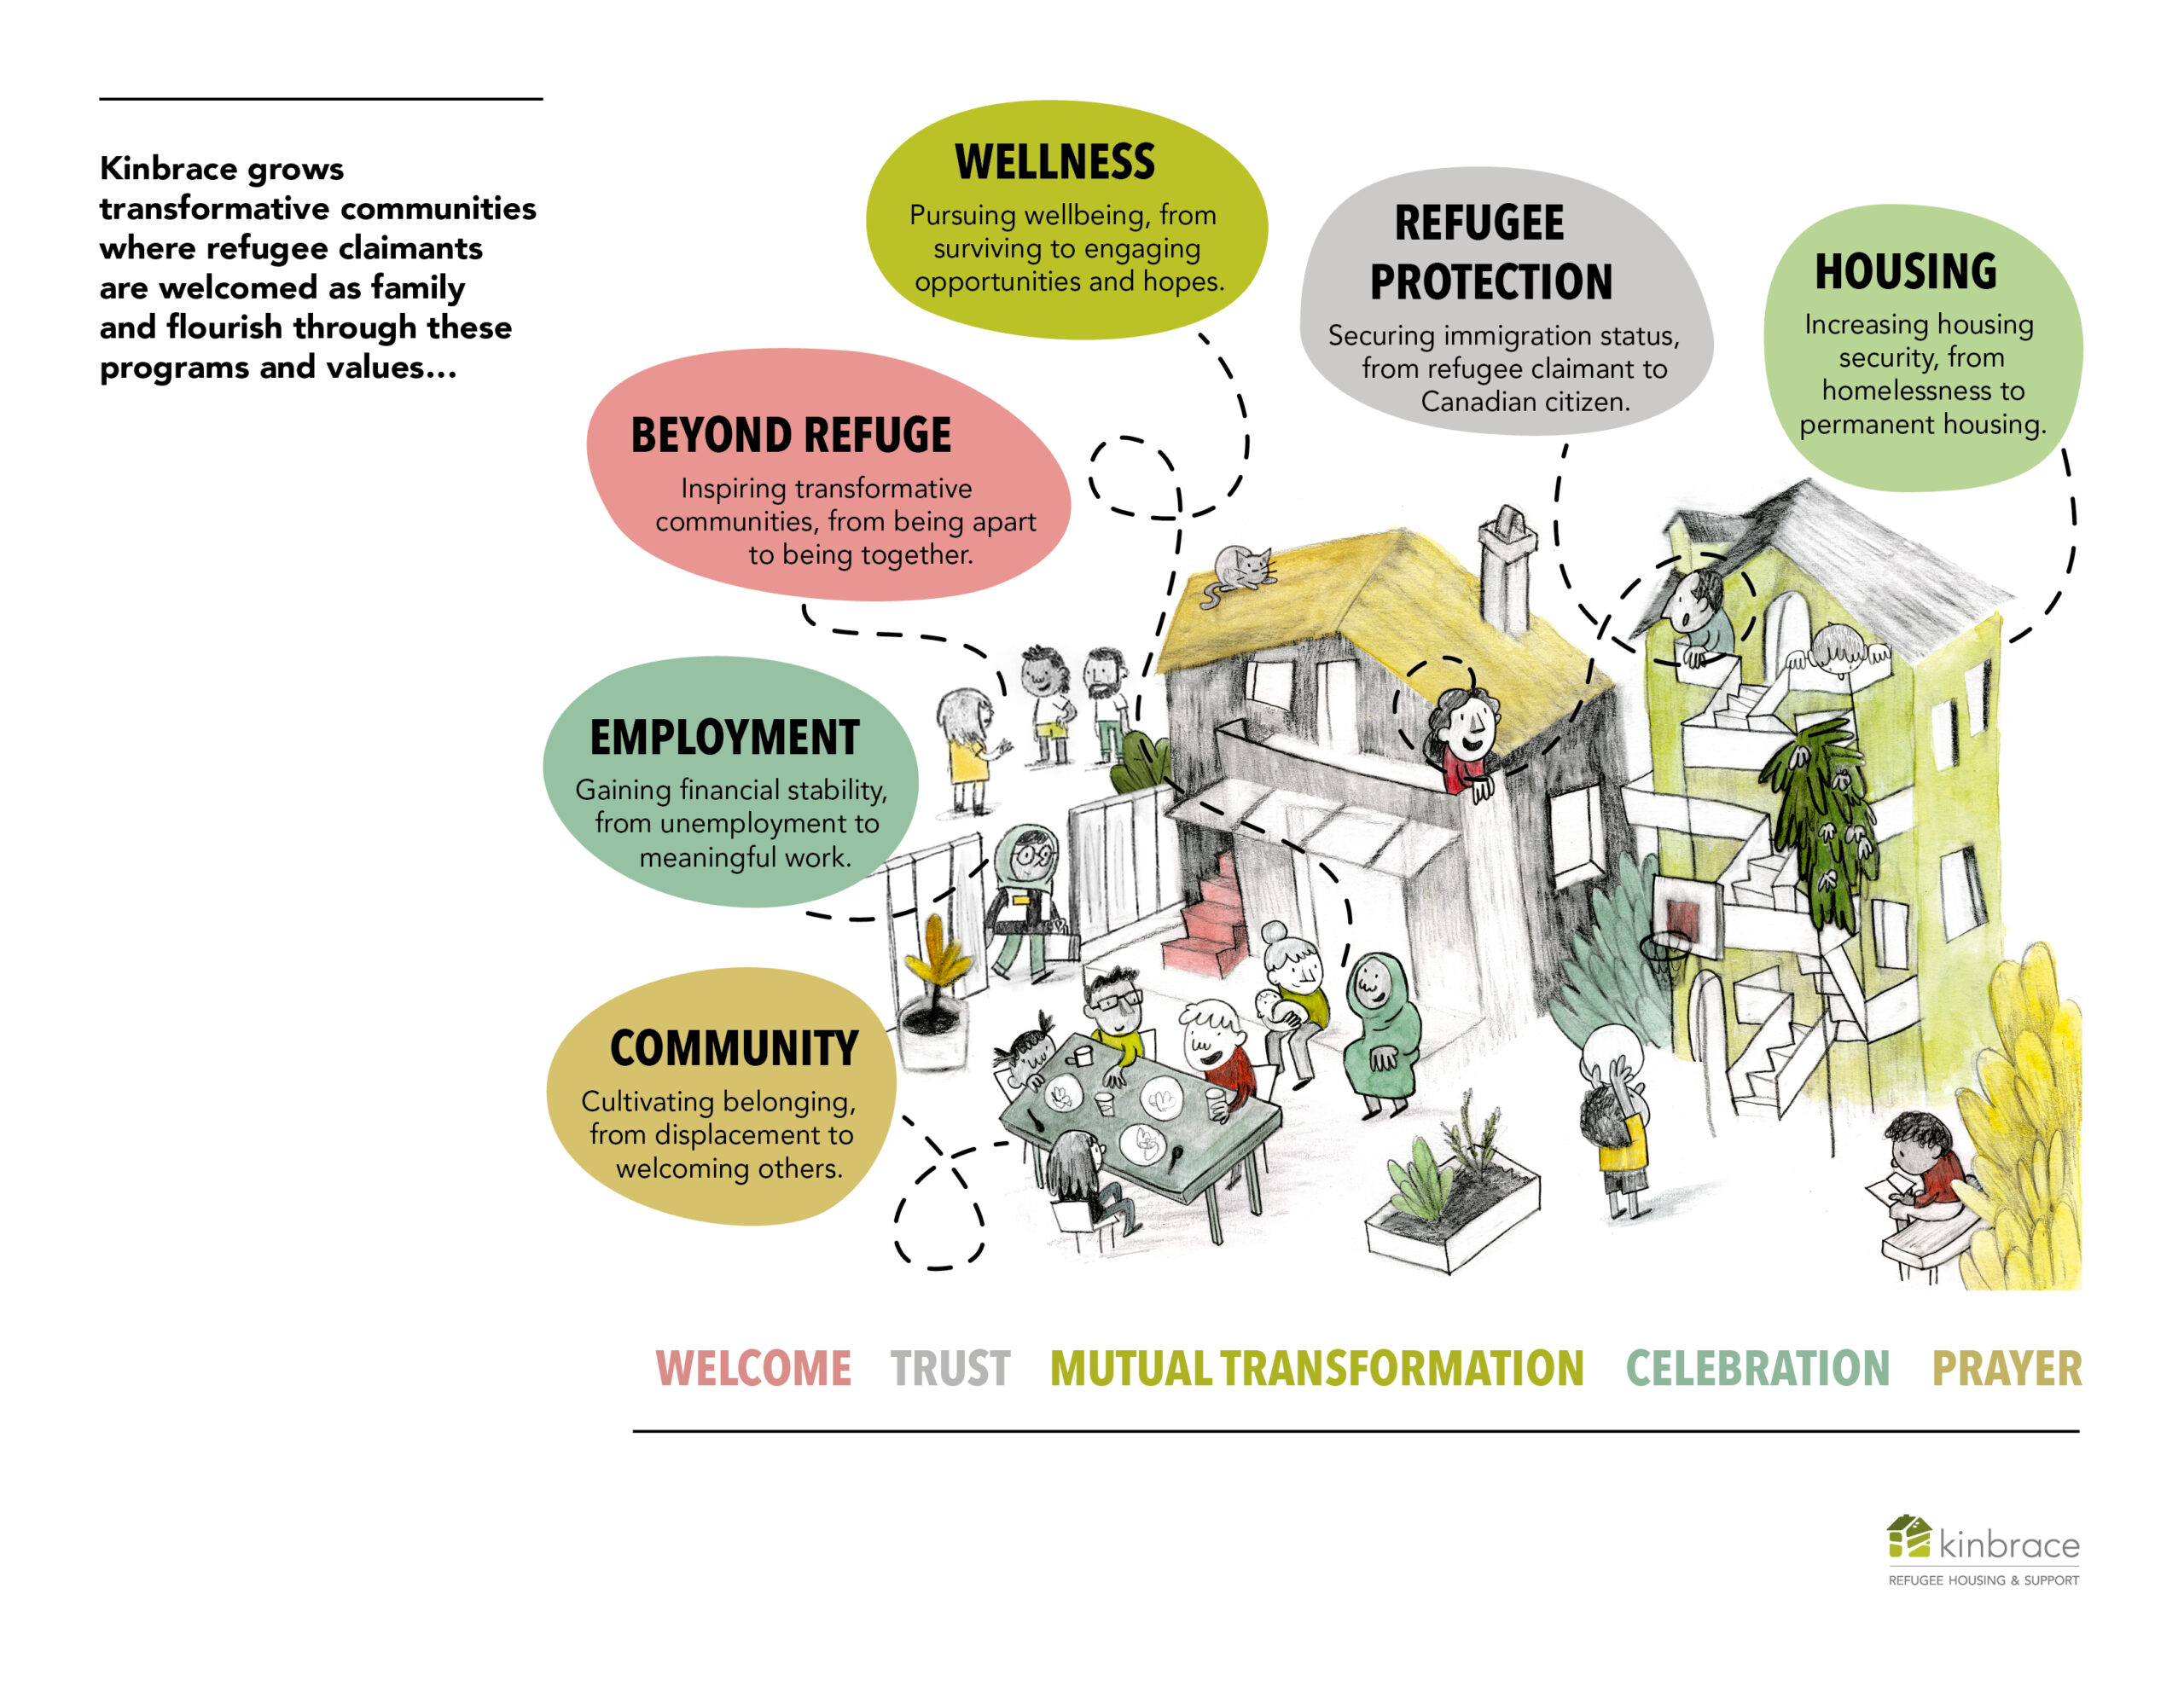 A graphic showing Kinbrace's six program areas: Community, Employment, Beyond Refuge, Wellness, Refugee protection, and Housing.